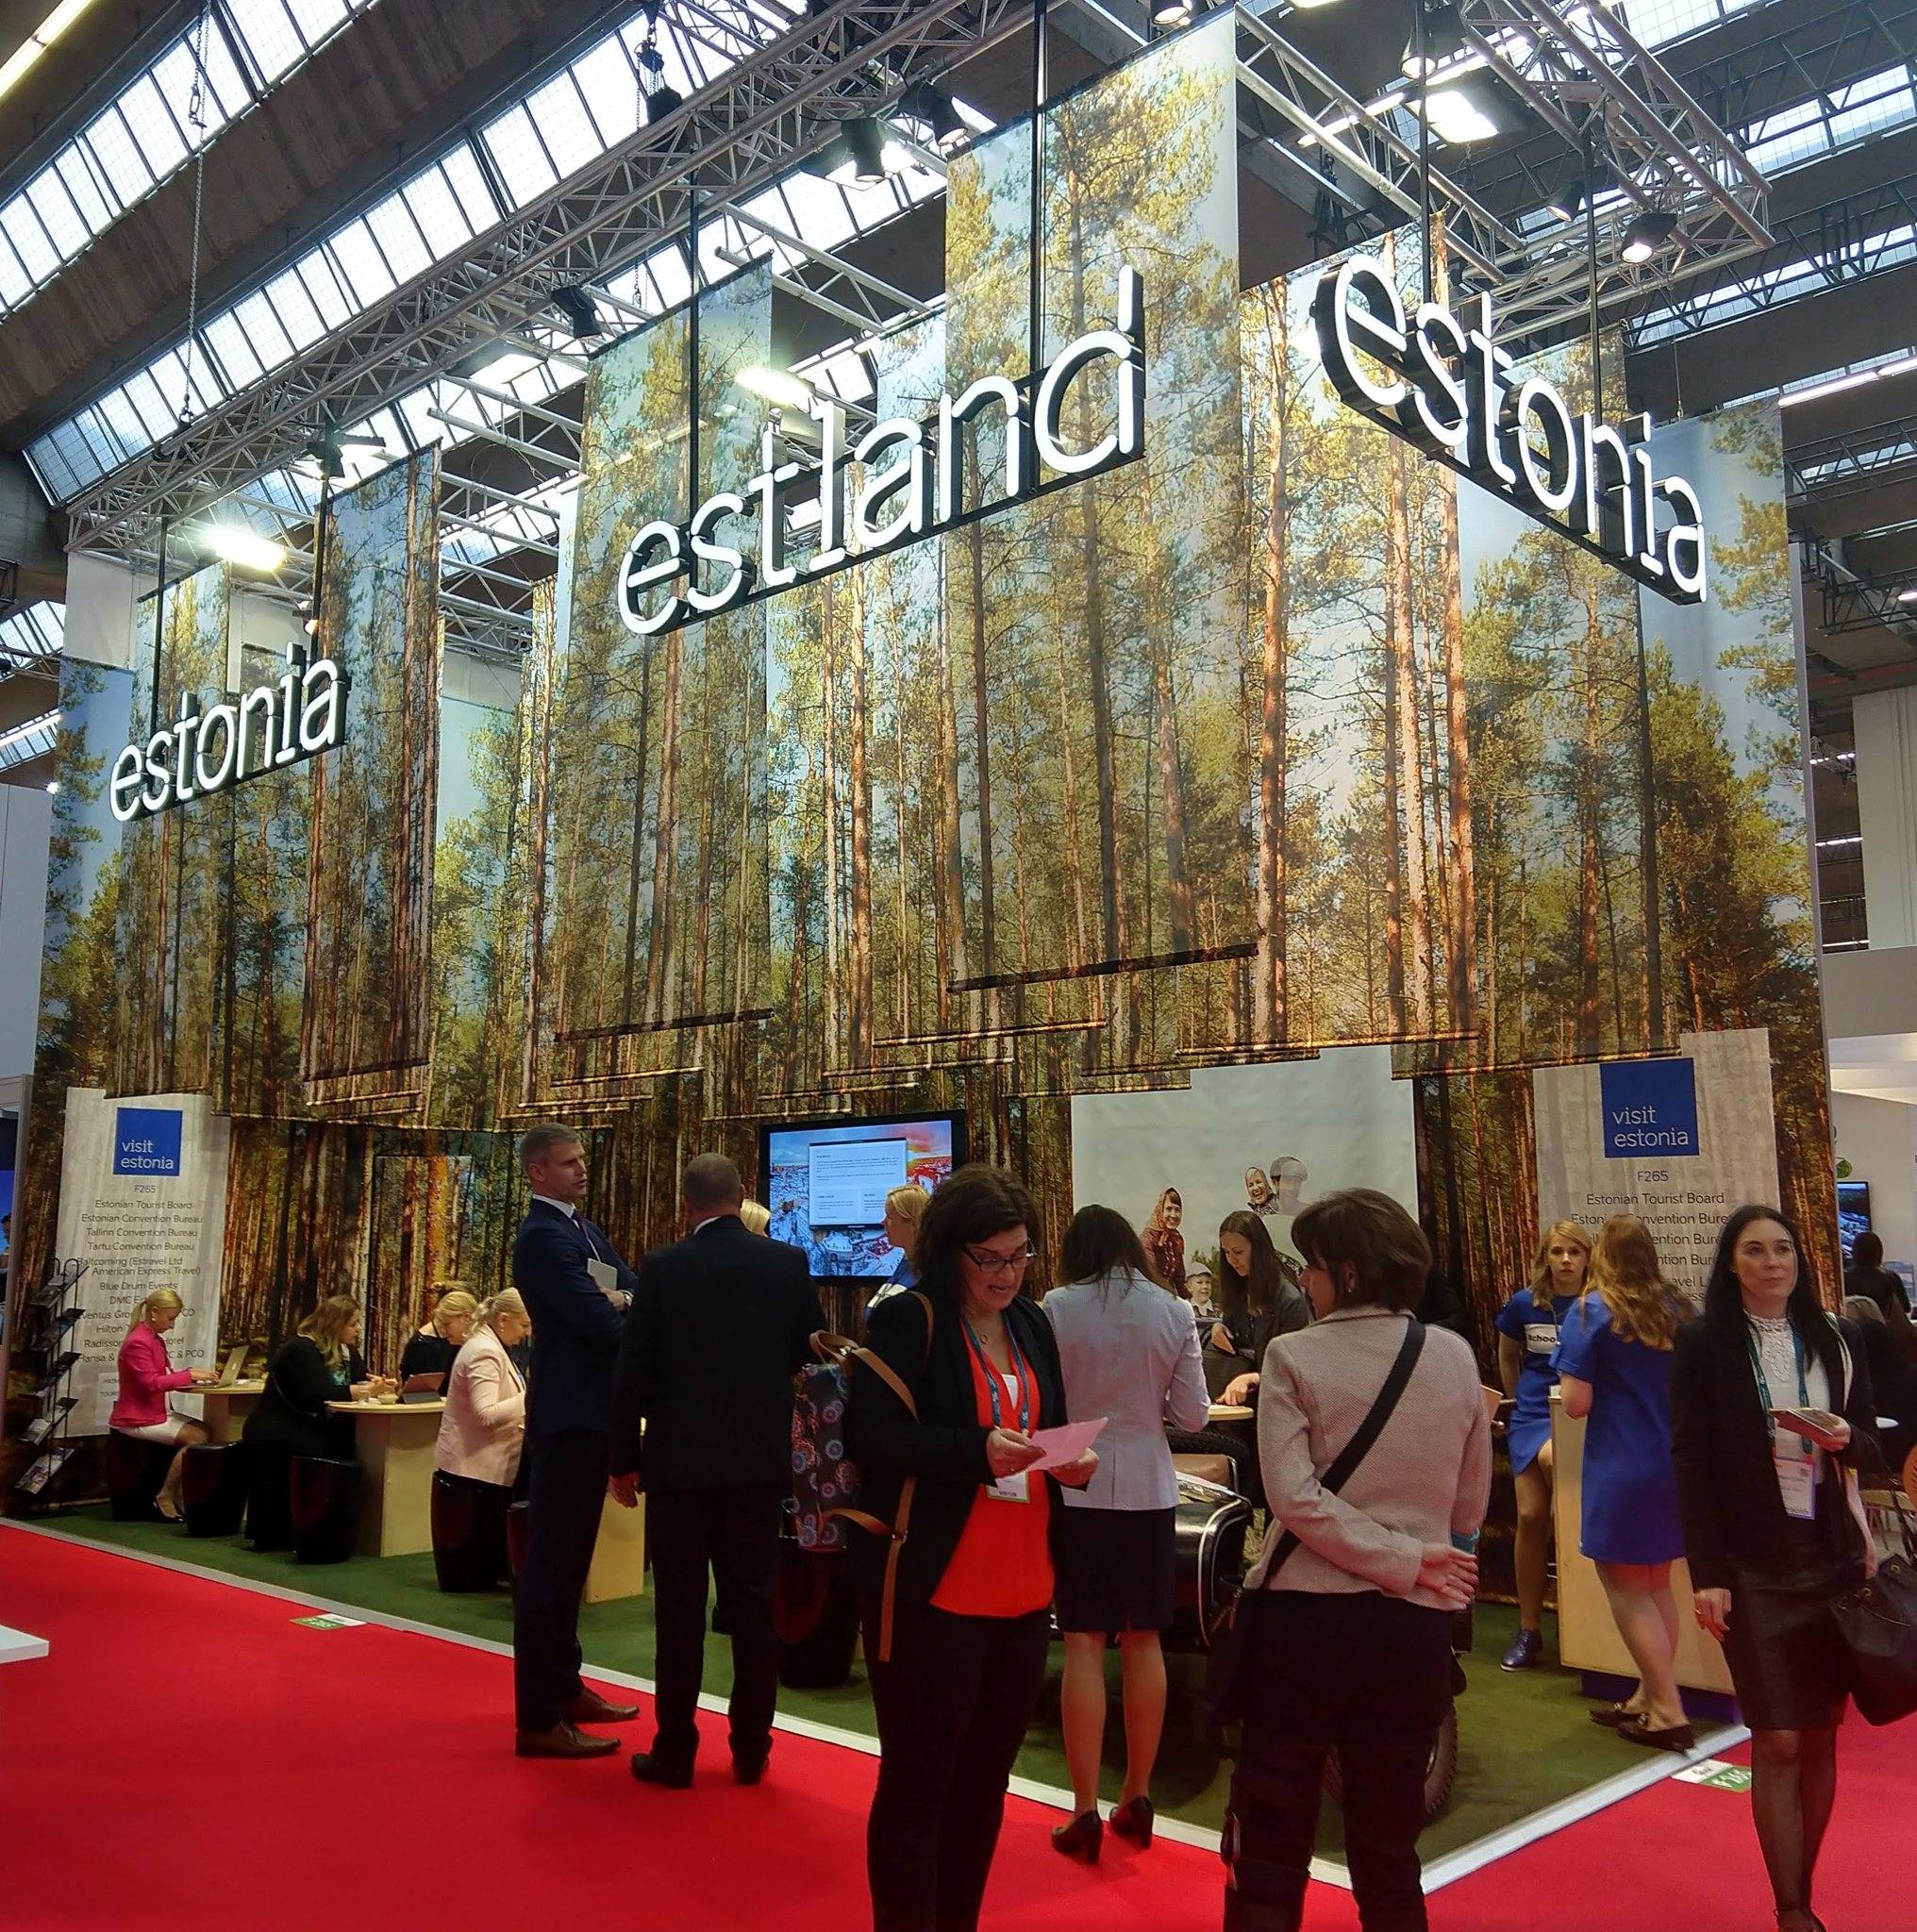 #Tallinn Convention Bureau is at #IMEX this week, come and meet us at stand F265! Team #Estonia also took part in #IMEXrun #visittallinn https://t.co/sQvfFwkp9C